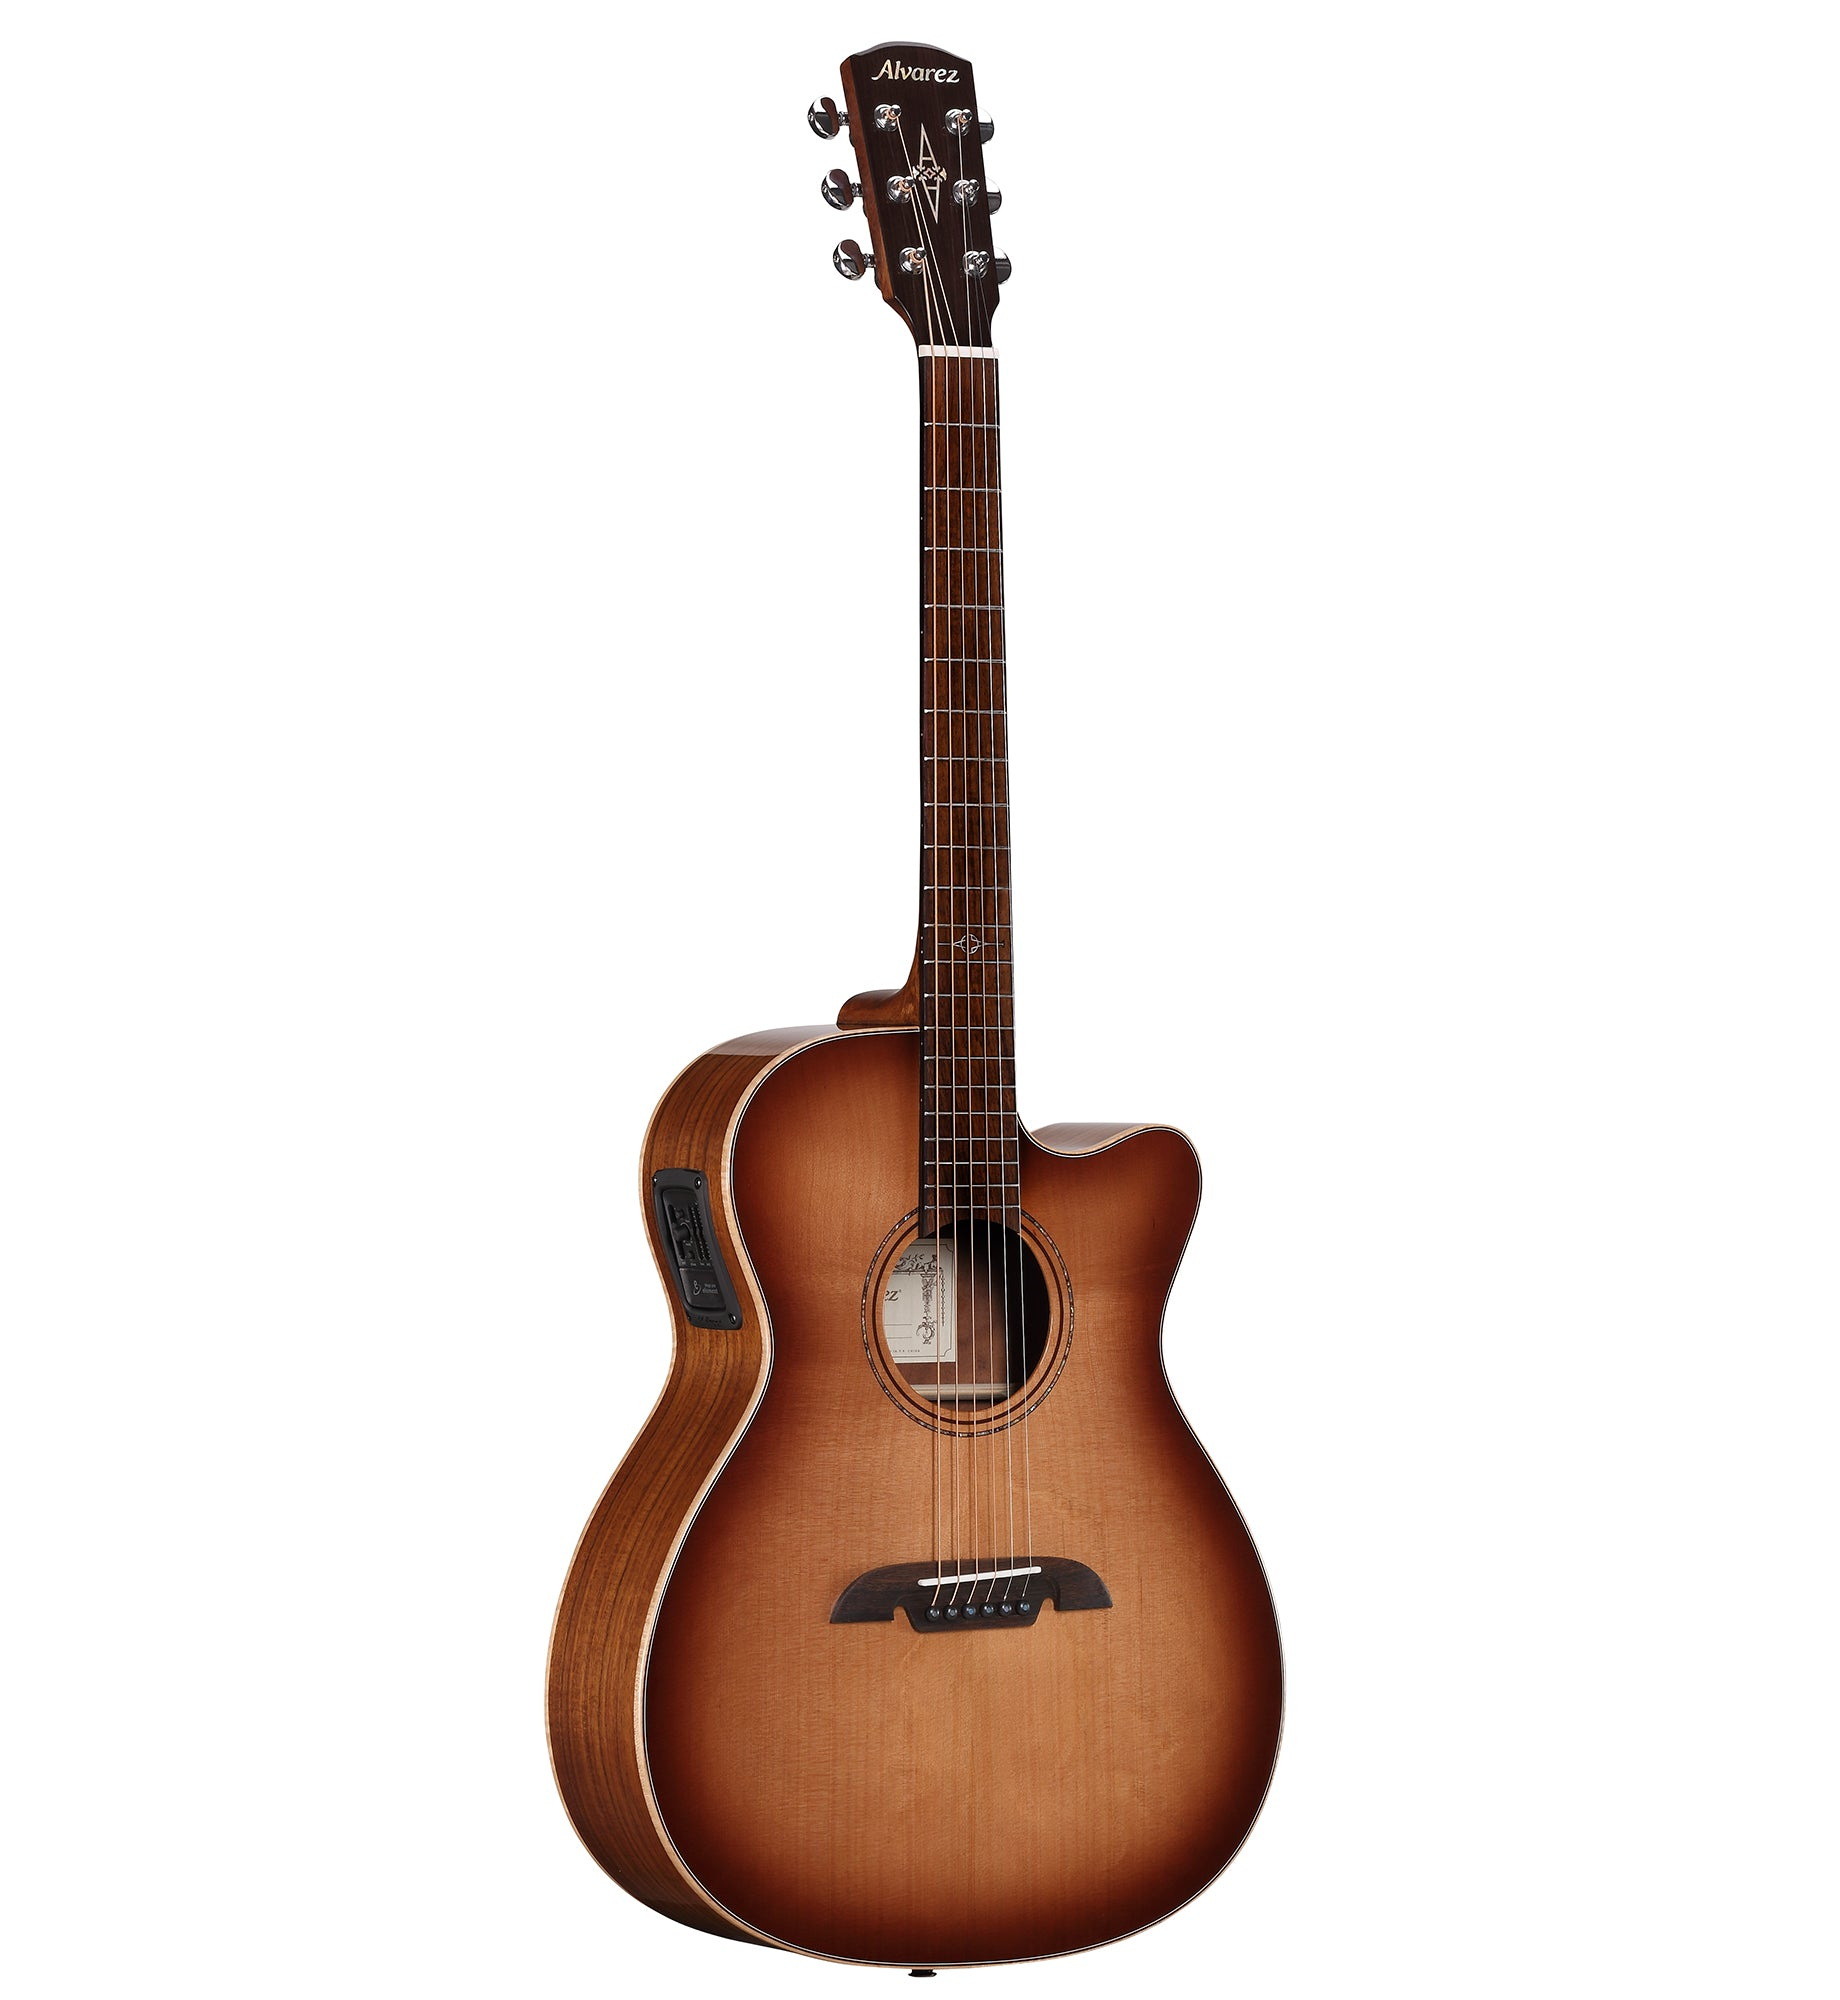 Alvarez AFA95CESHB electric acoustic guitar